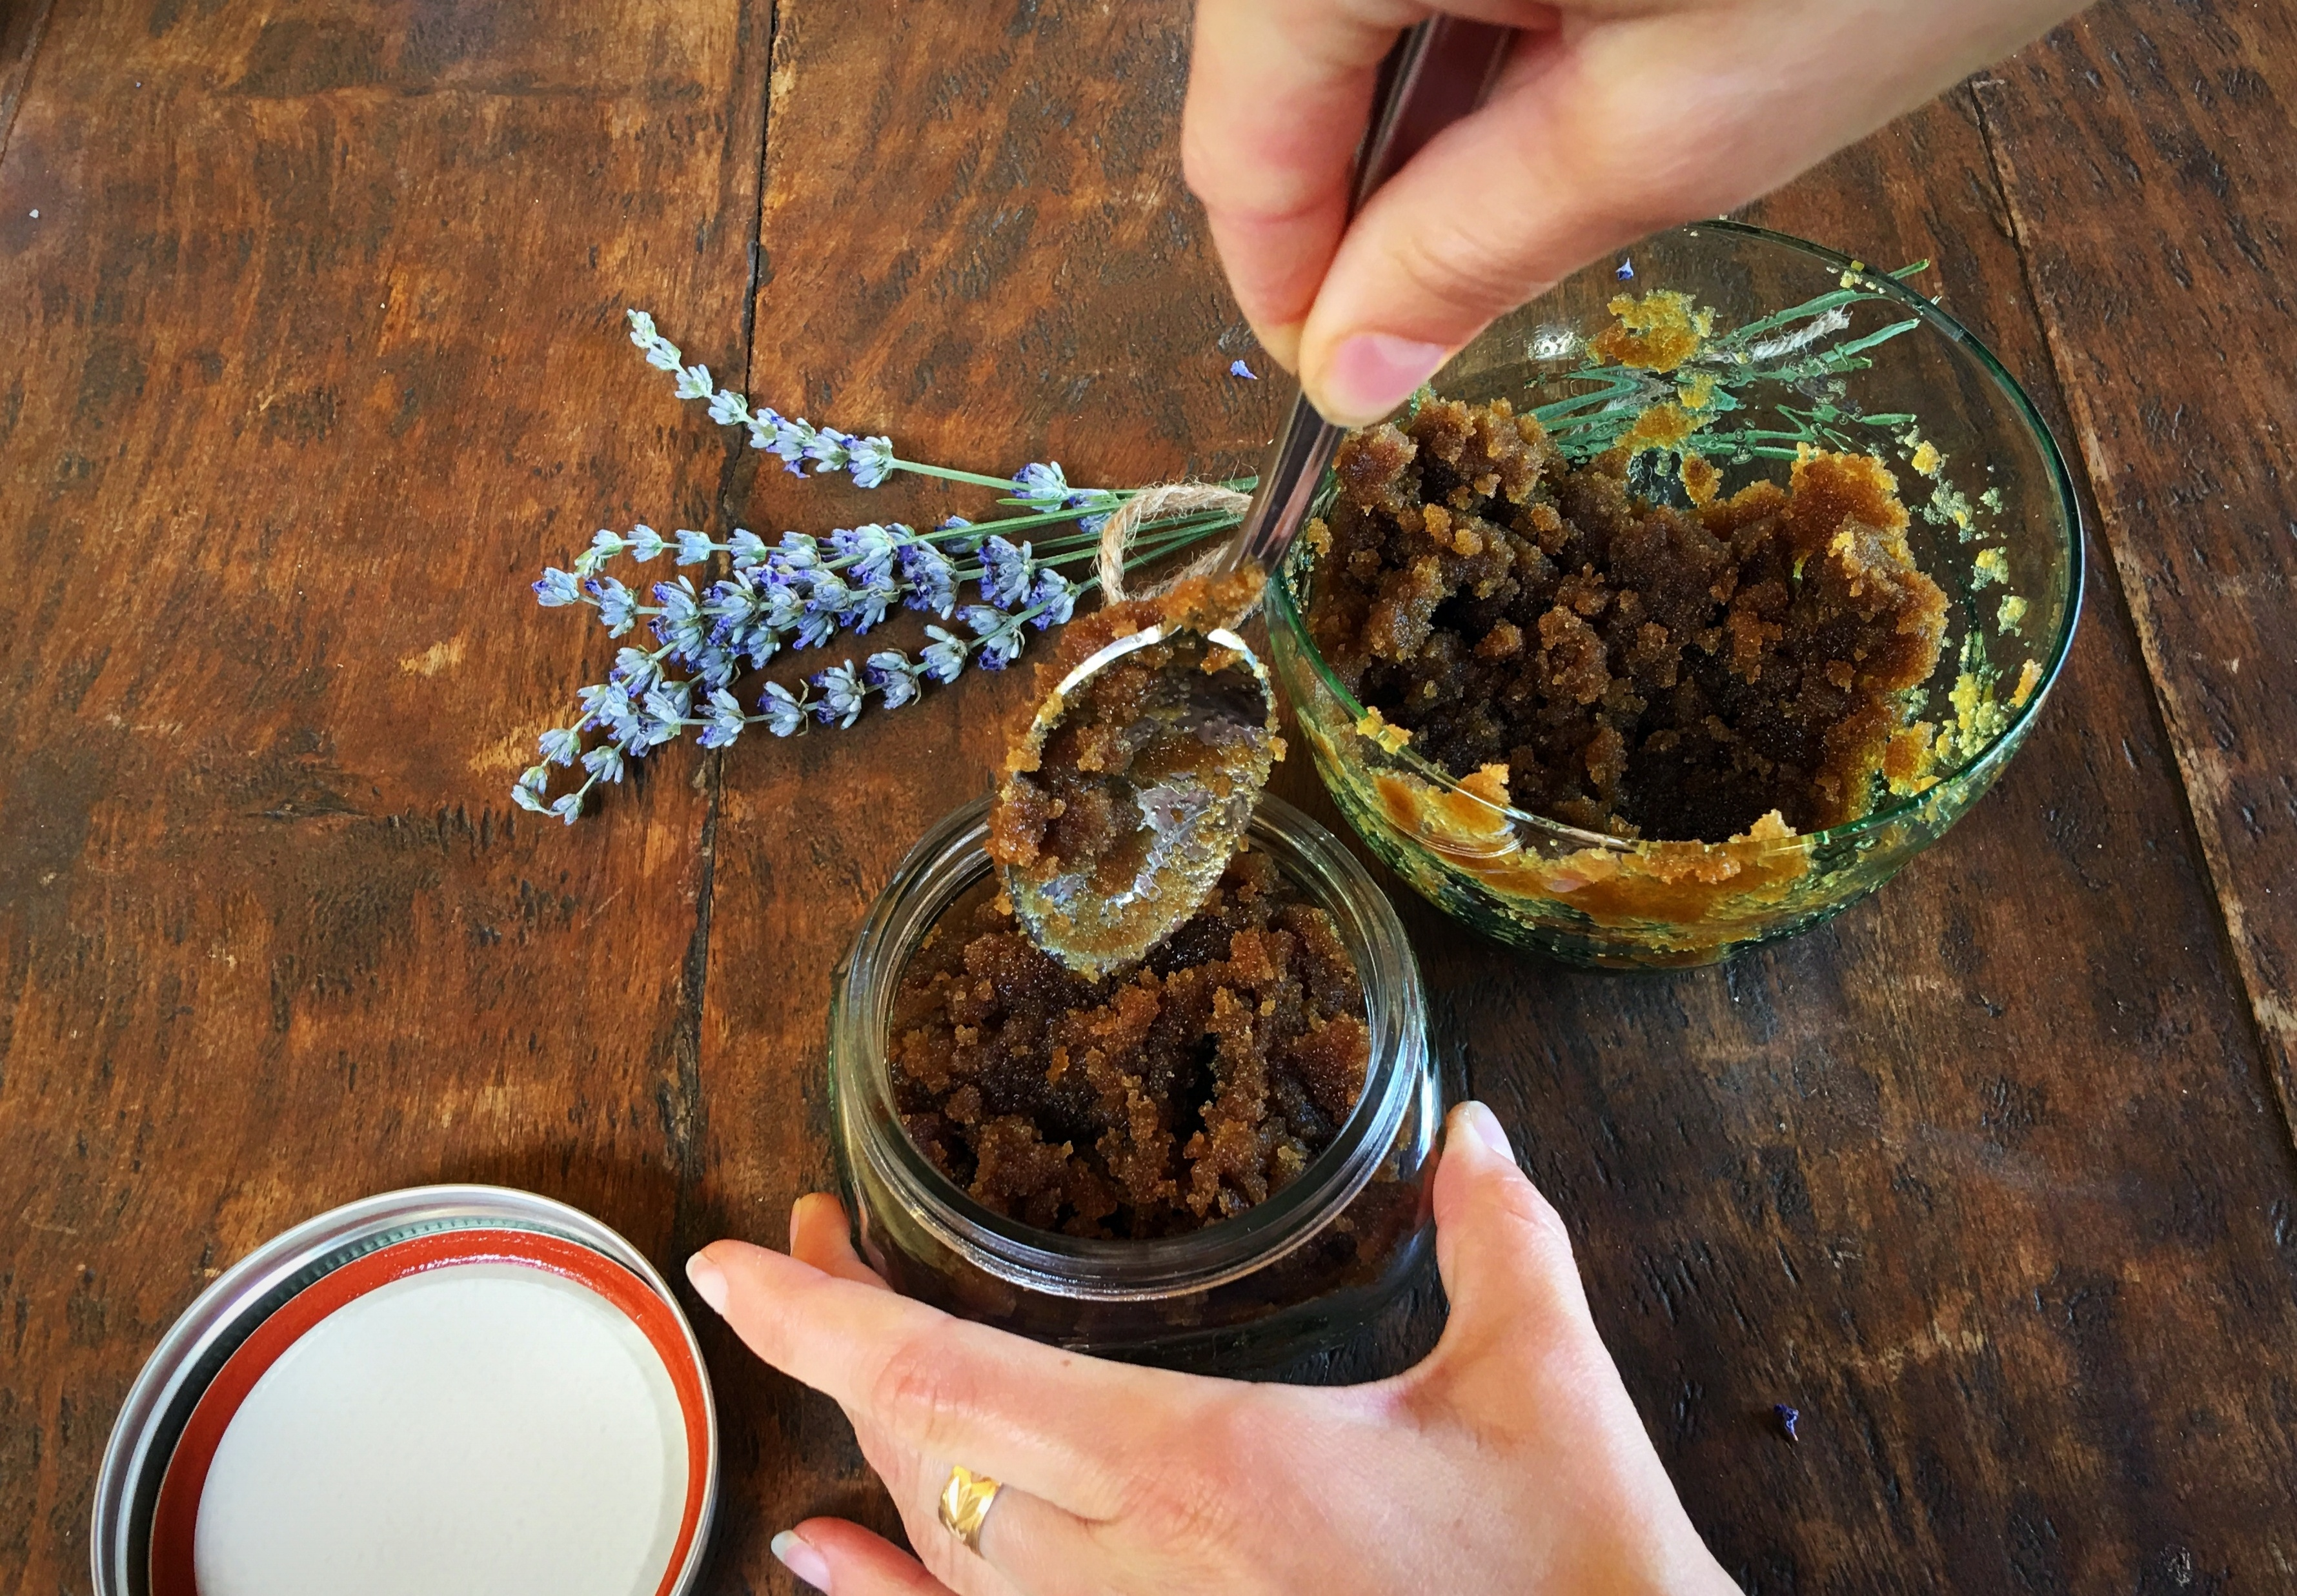 DIY: BROWN SUGAR & OLIVE OIL FACE SCRUB